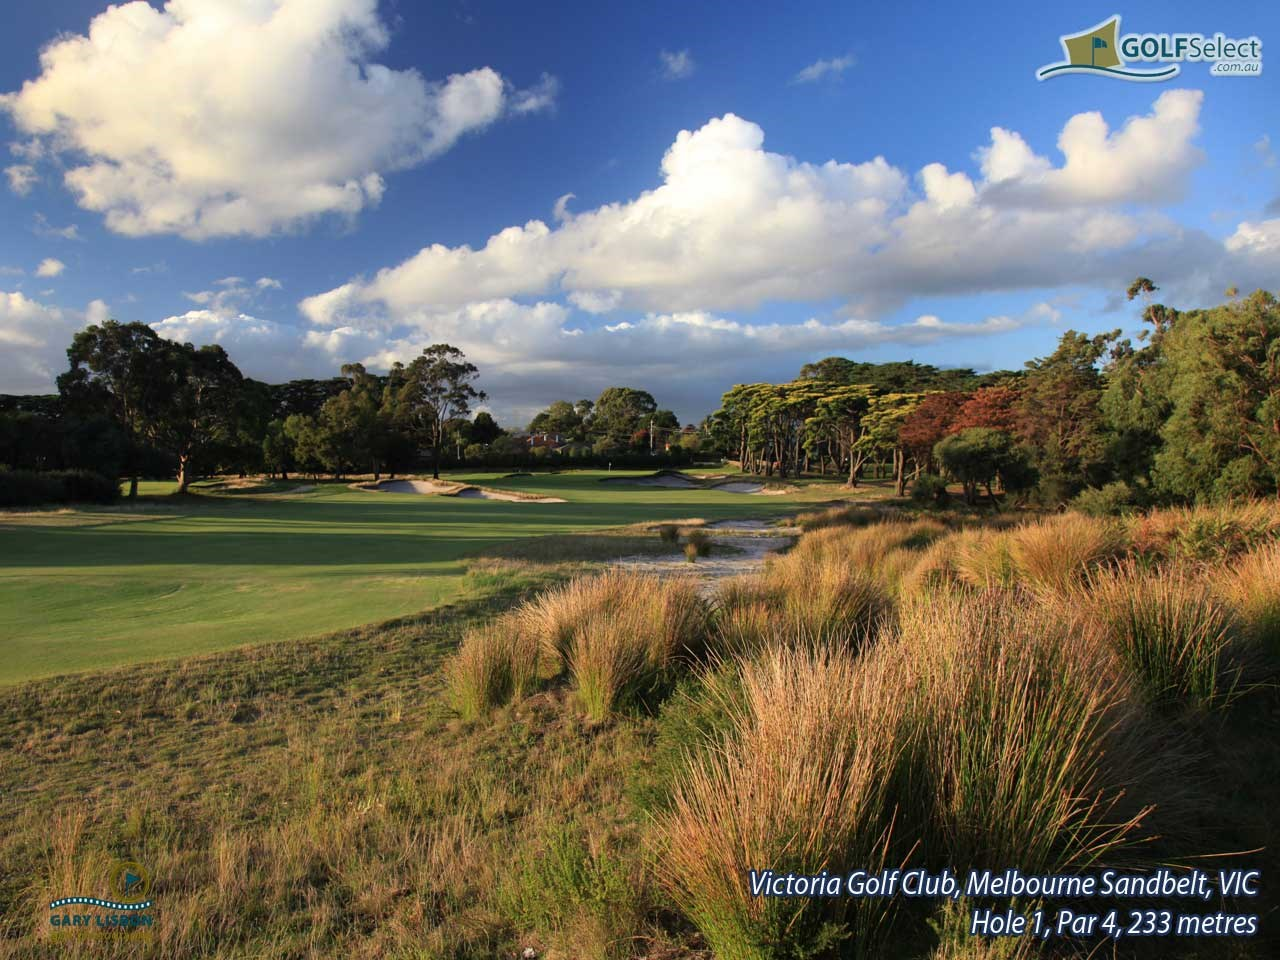 Victoria Golf Club Hole 1, Par 4, 233 metres